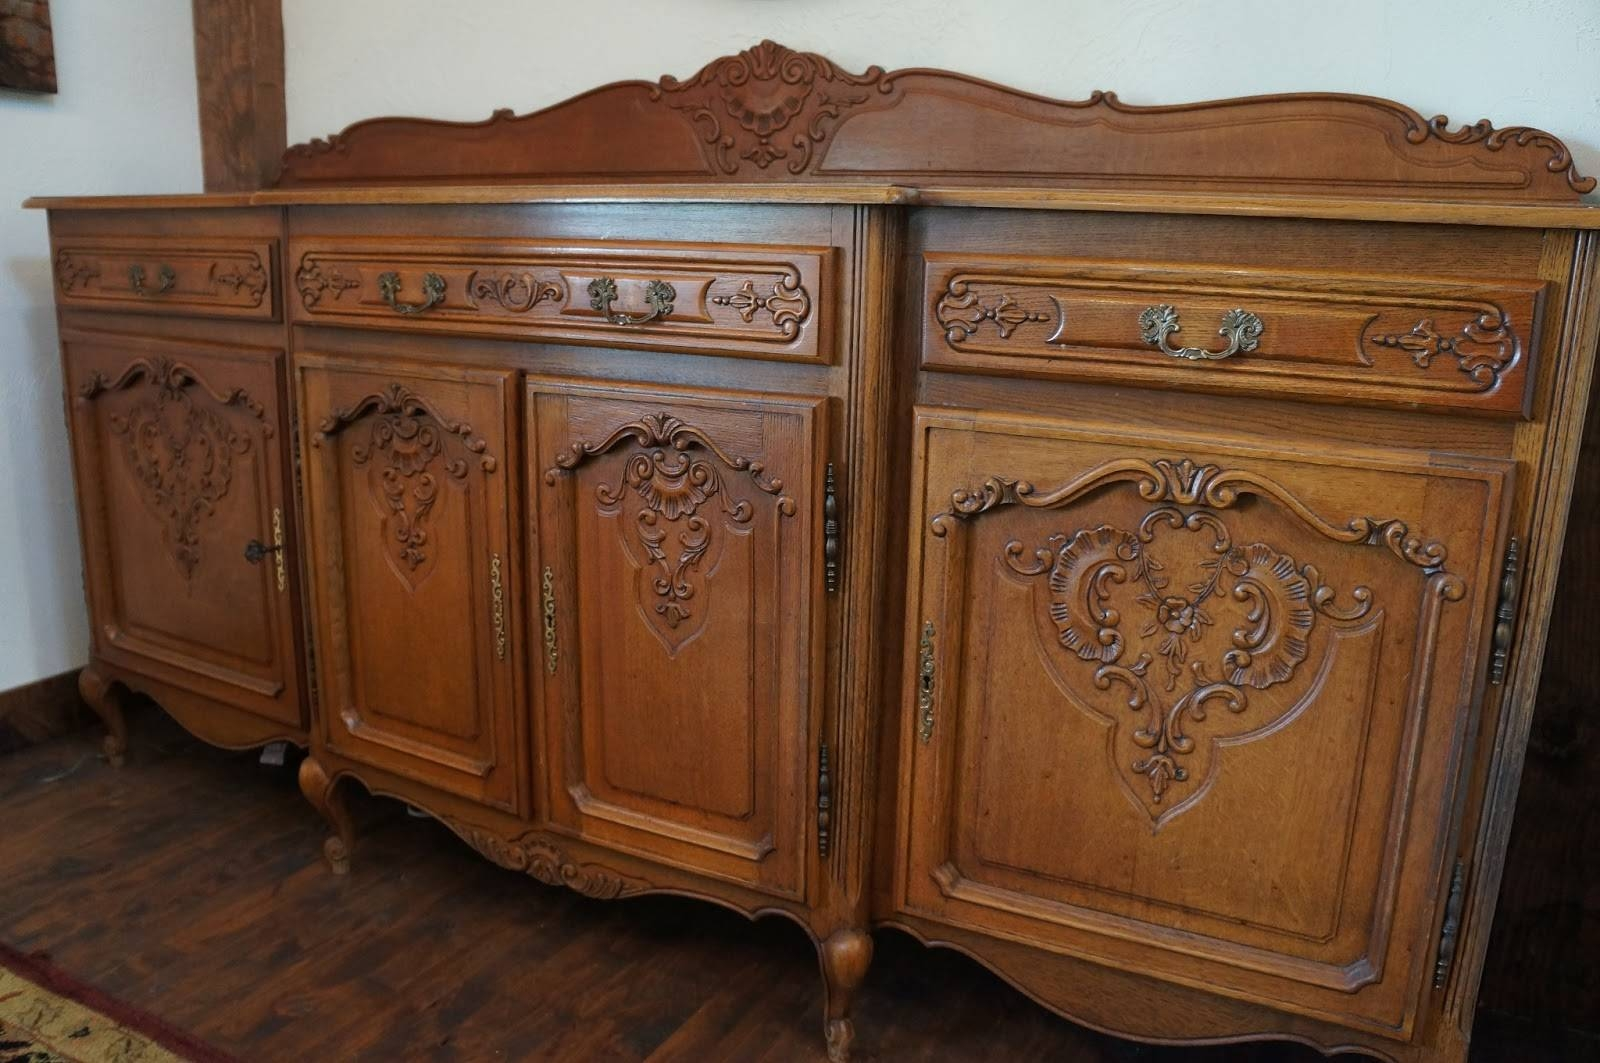 European Flair Furniture: Shop Store in French Country Sideboards (Image 10 of 30)